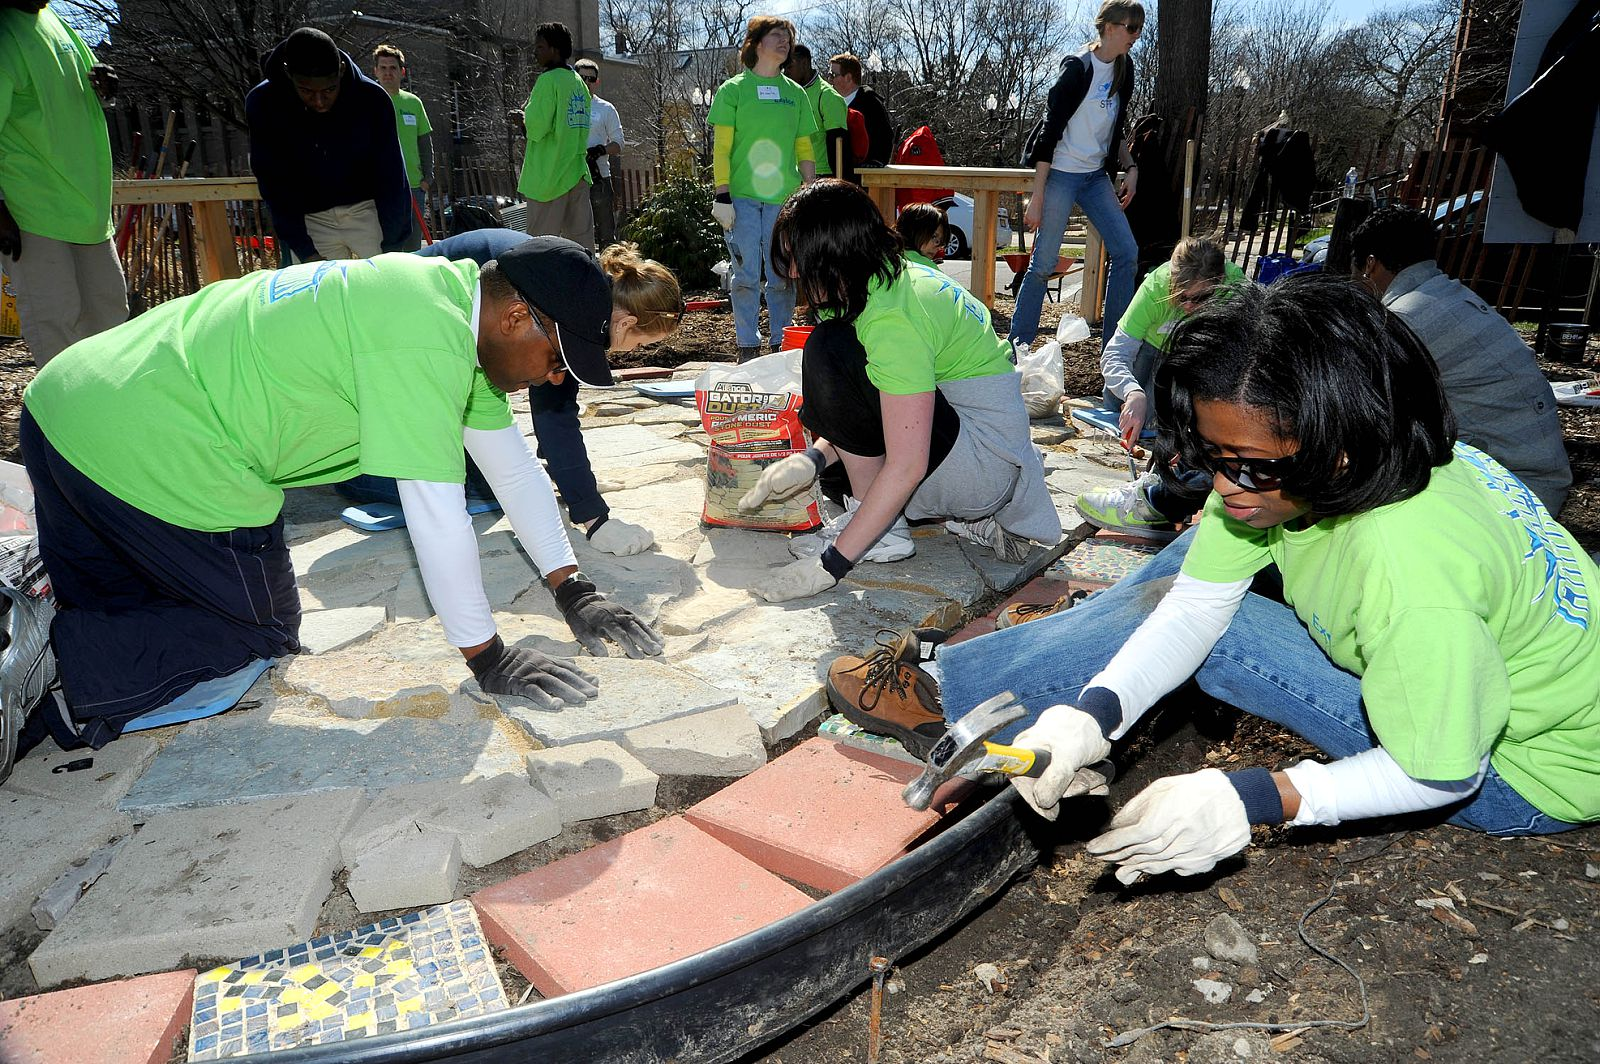 Exelon teams with Frederick Douglass students to work on